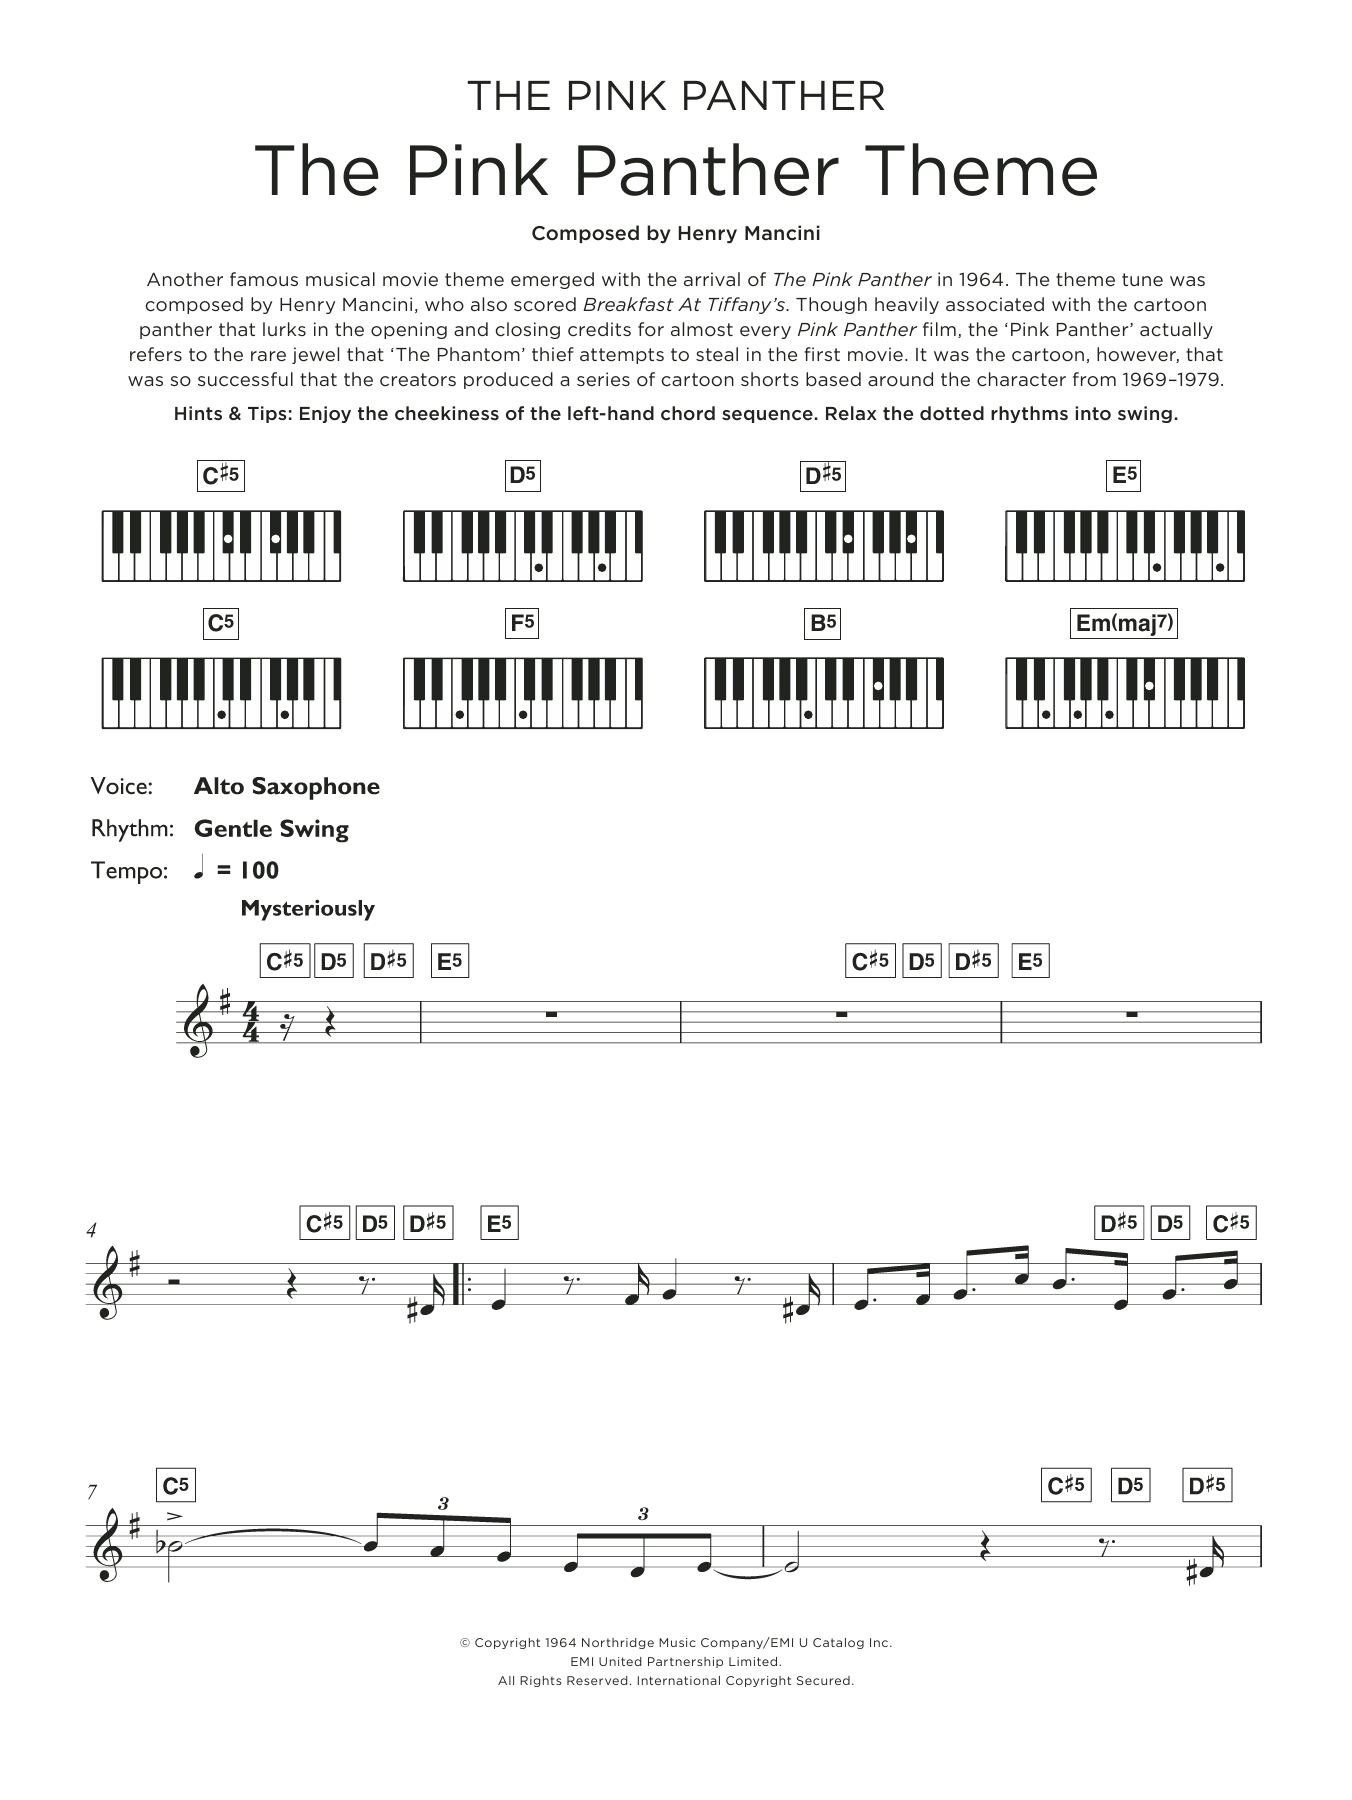 The Pink Panther Theme Sheet Music